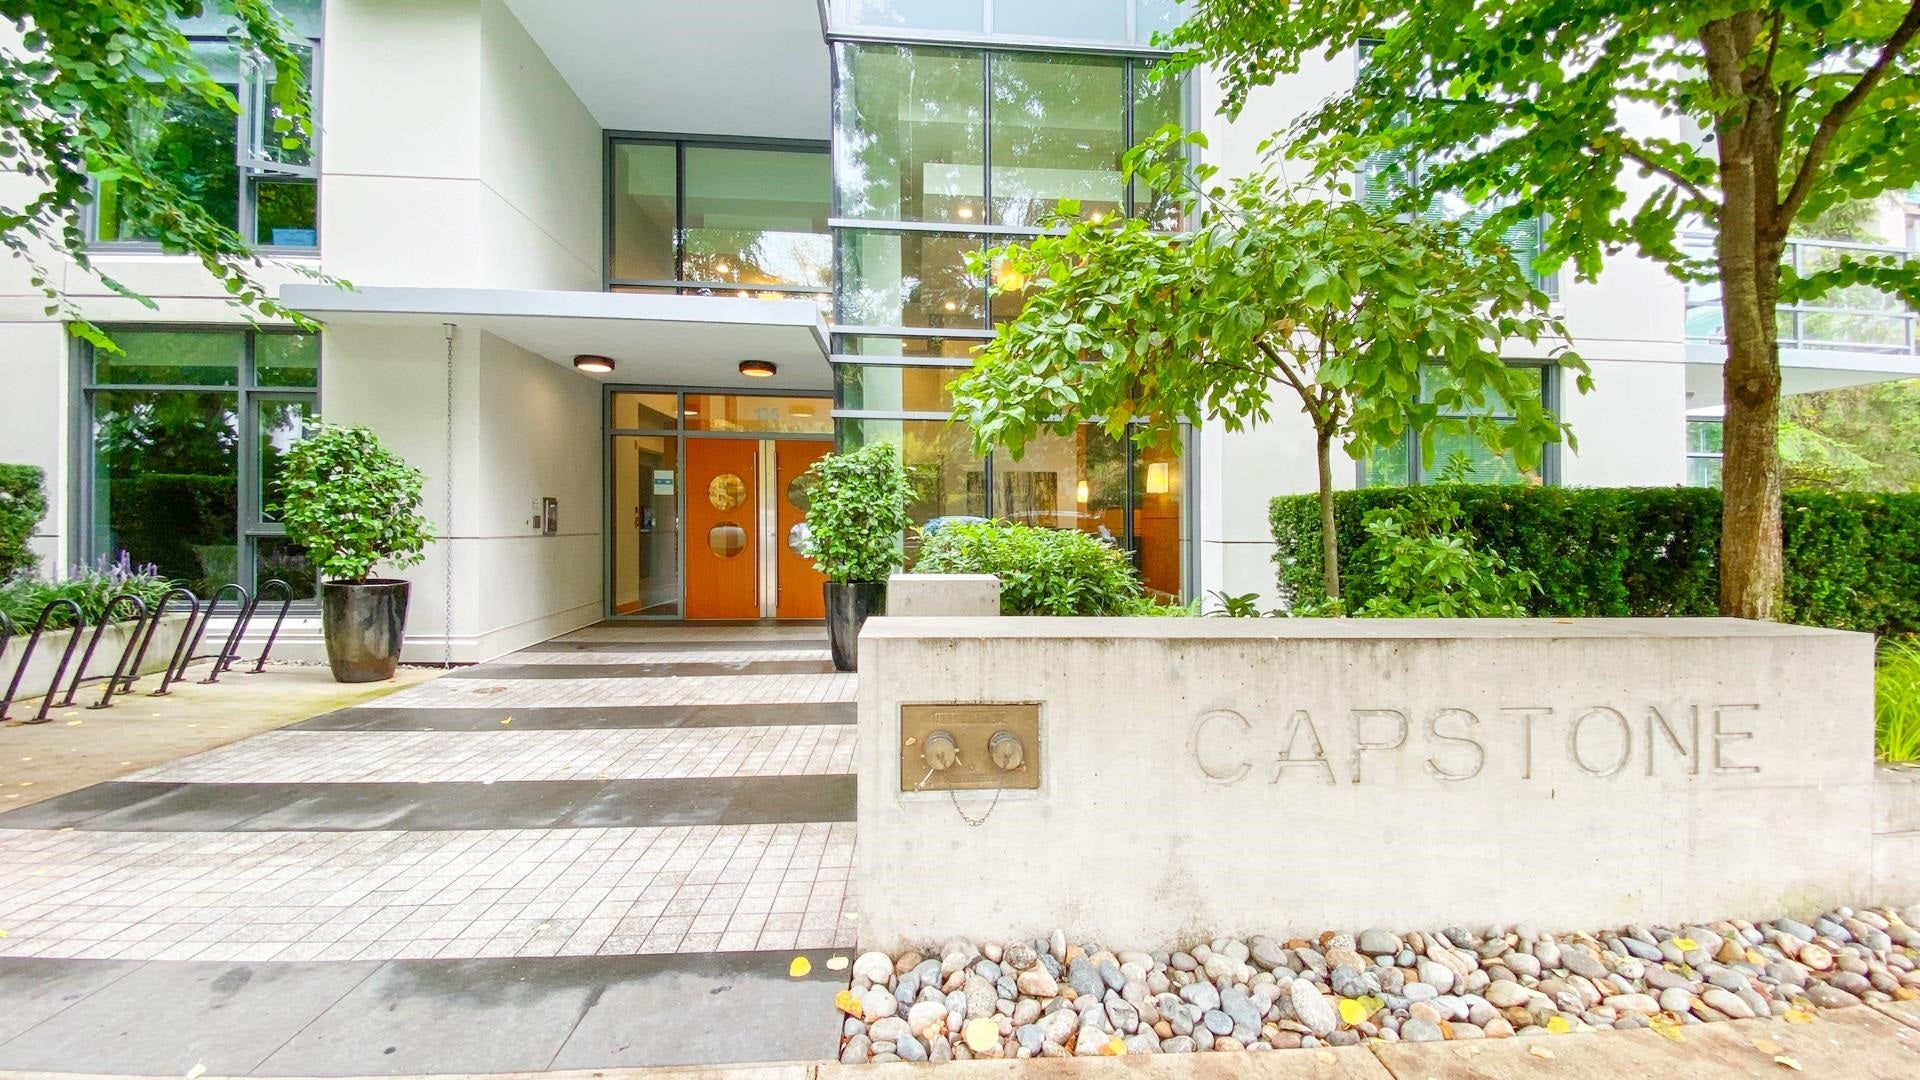 306 135 W 2ND STREET - Lower Lonsdale Apartment/Condo for sale, 1 Bedroom (R2621466) - #1